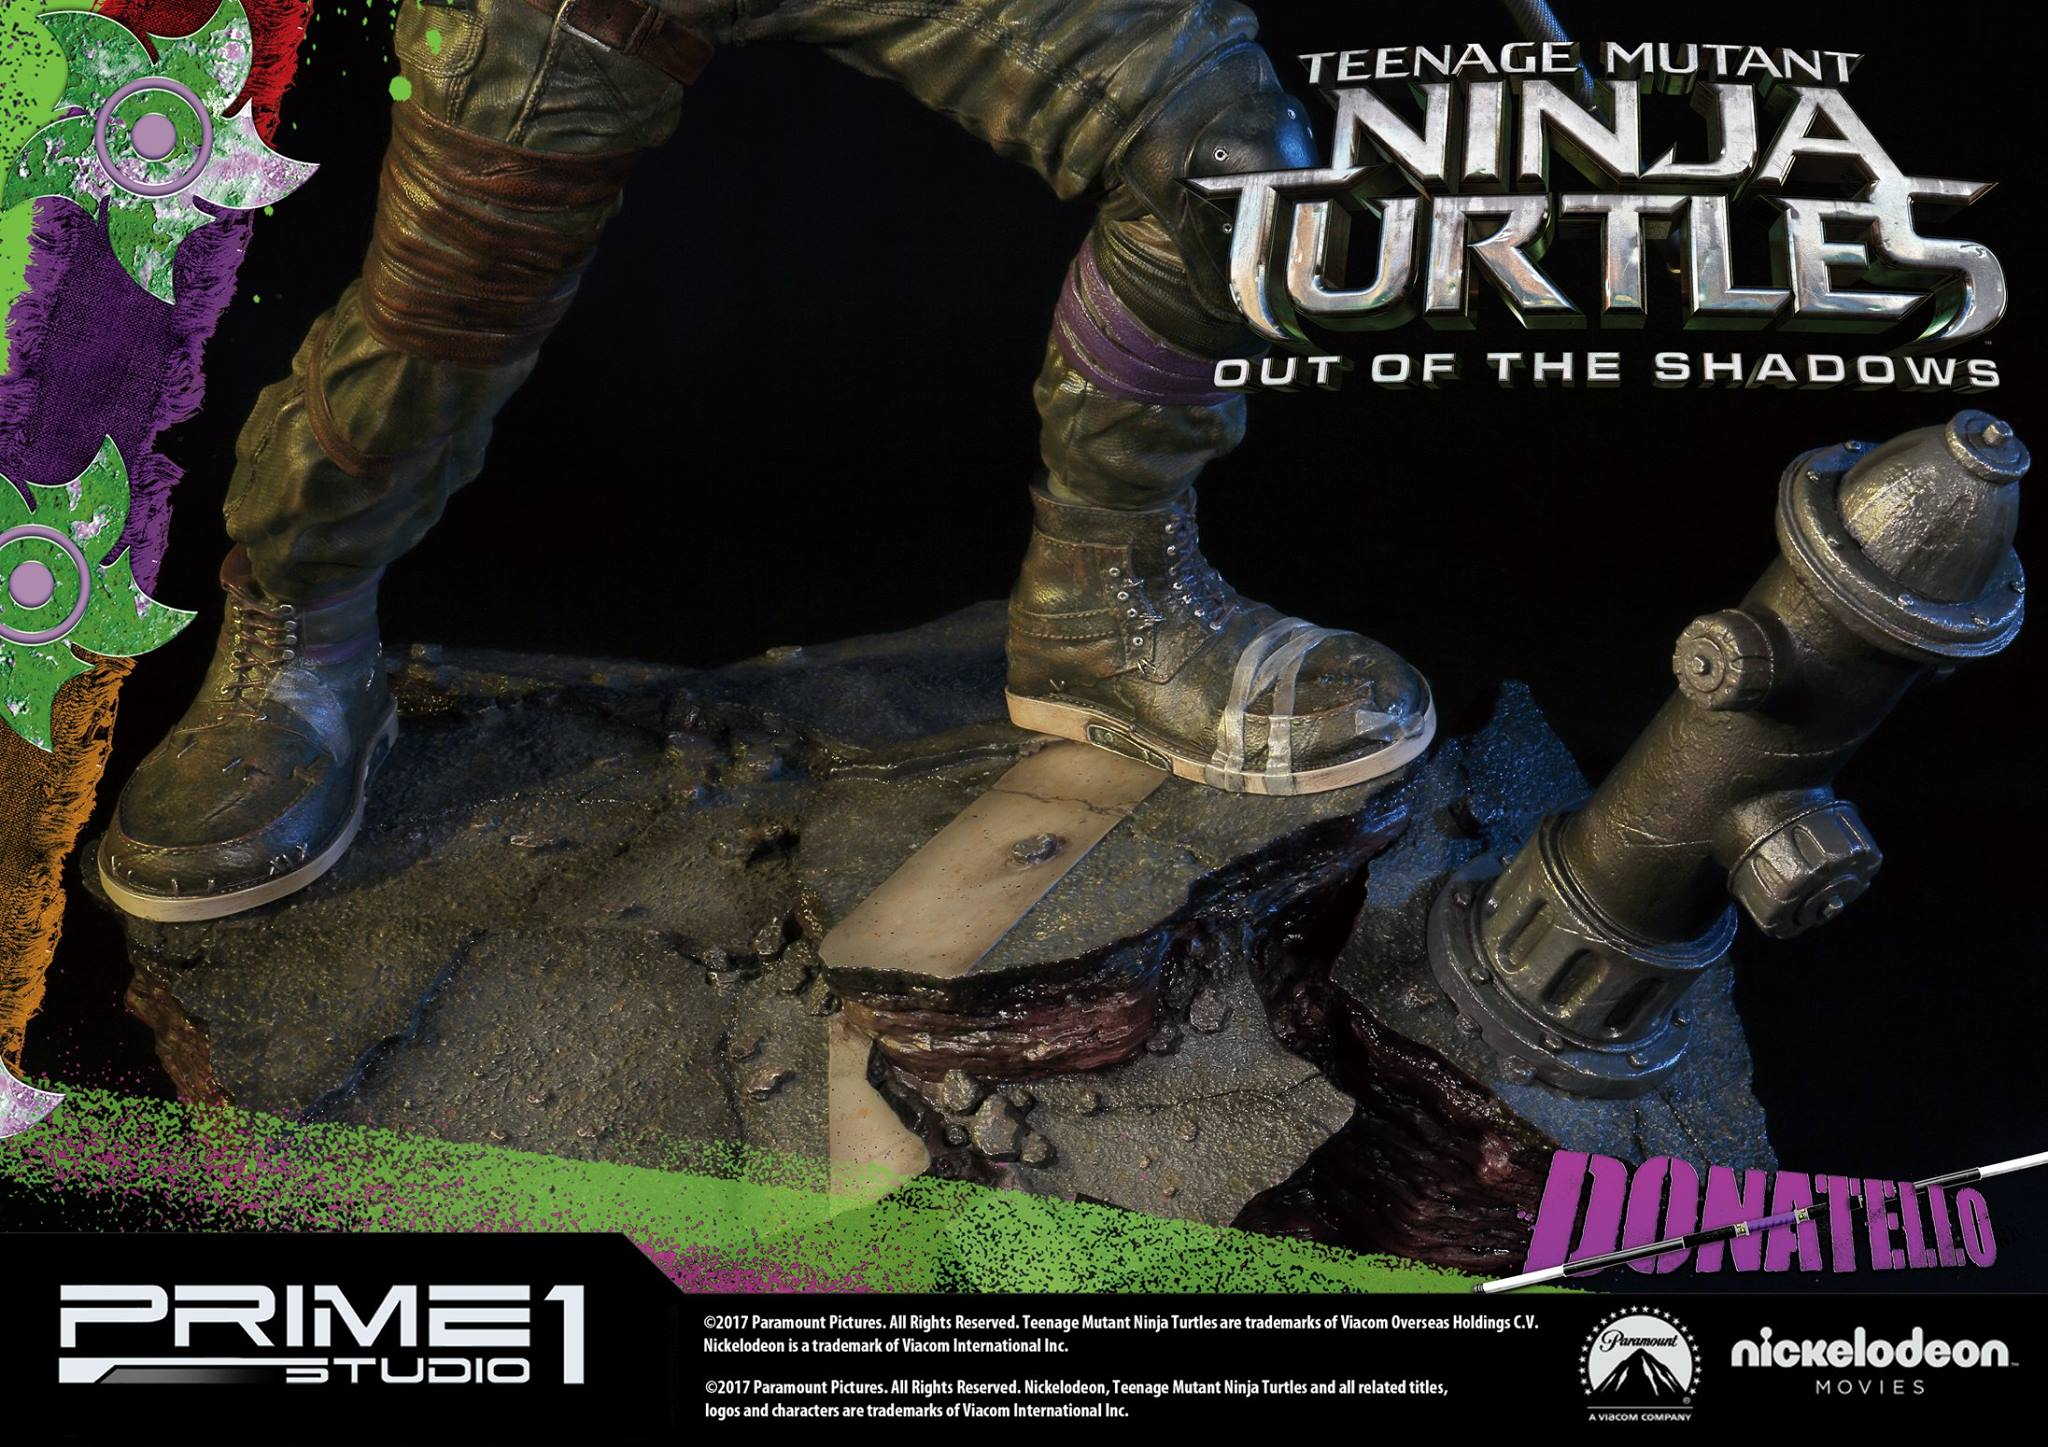 TMNT-Out-of-the-Shadows-Donatello-Statue-013.jpg